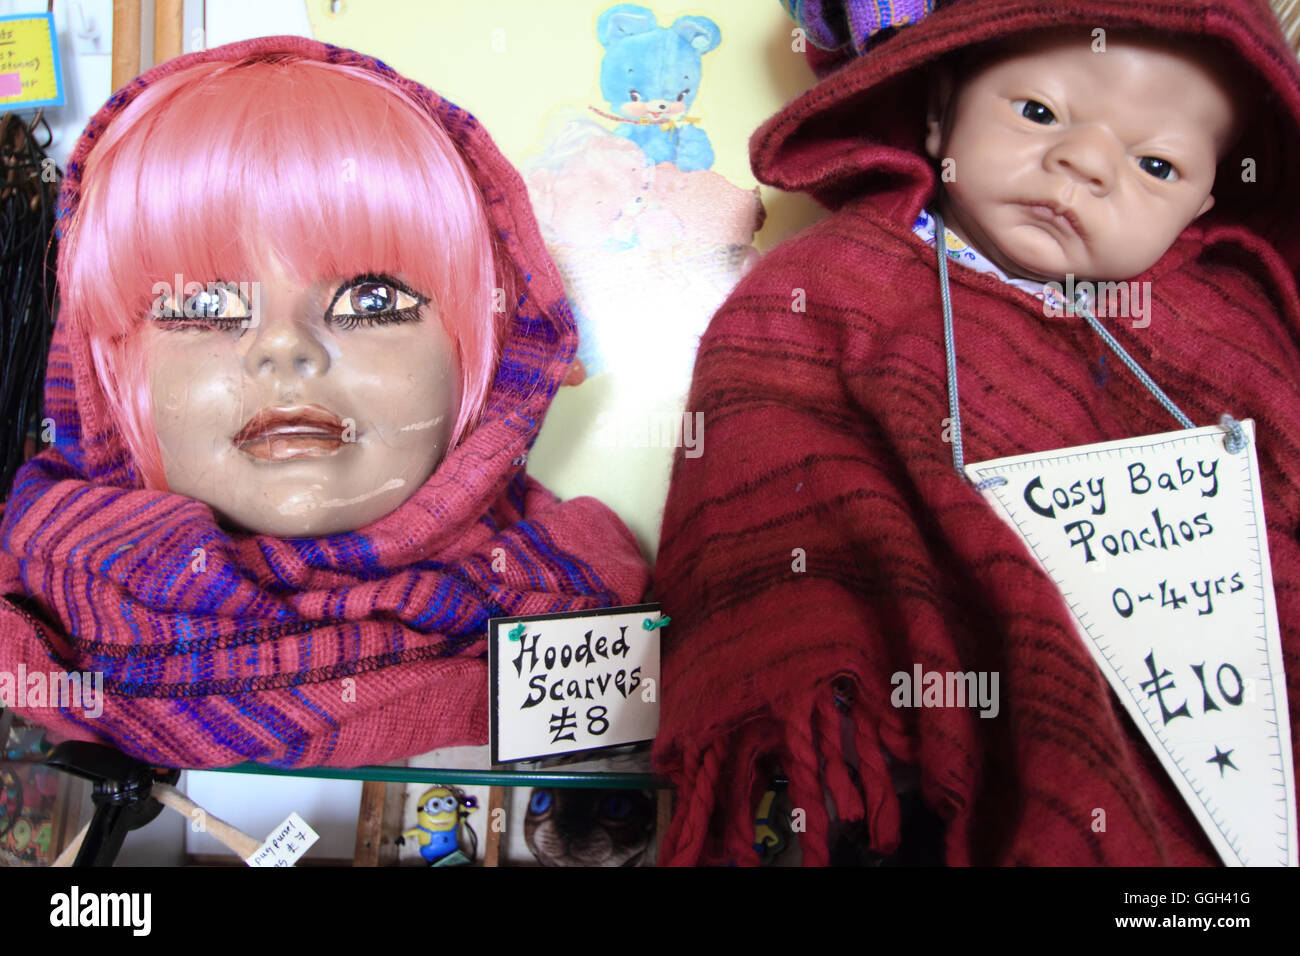 Scarves and ponchos for babies on sale display in The Vaults, an antiques and vintage items store in Sheffield Antique - Stock Image